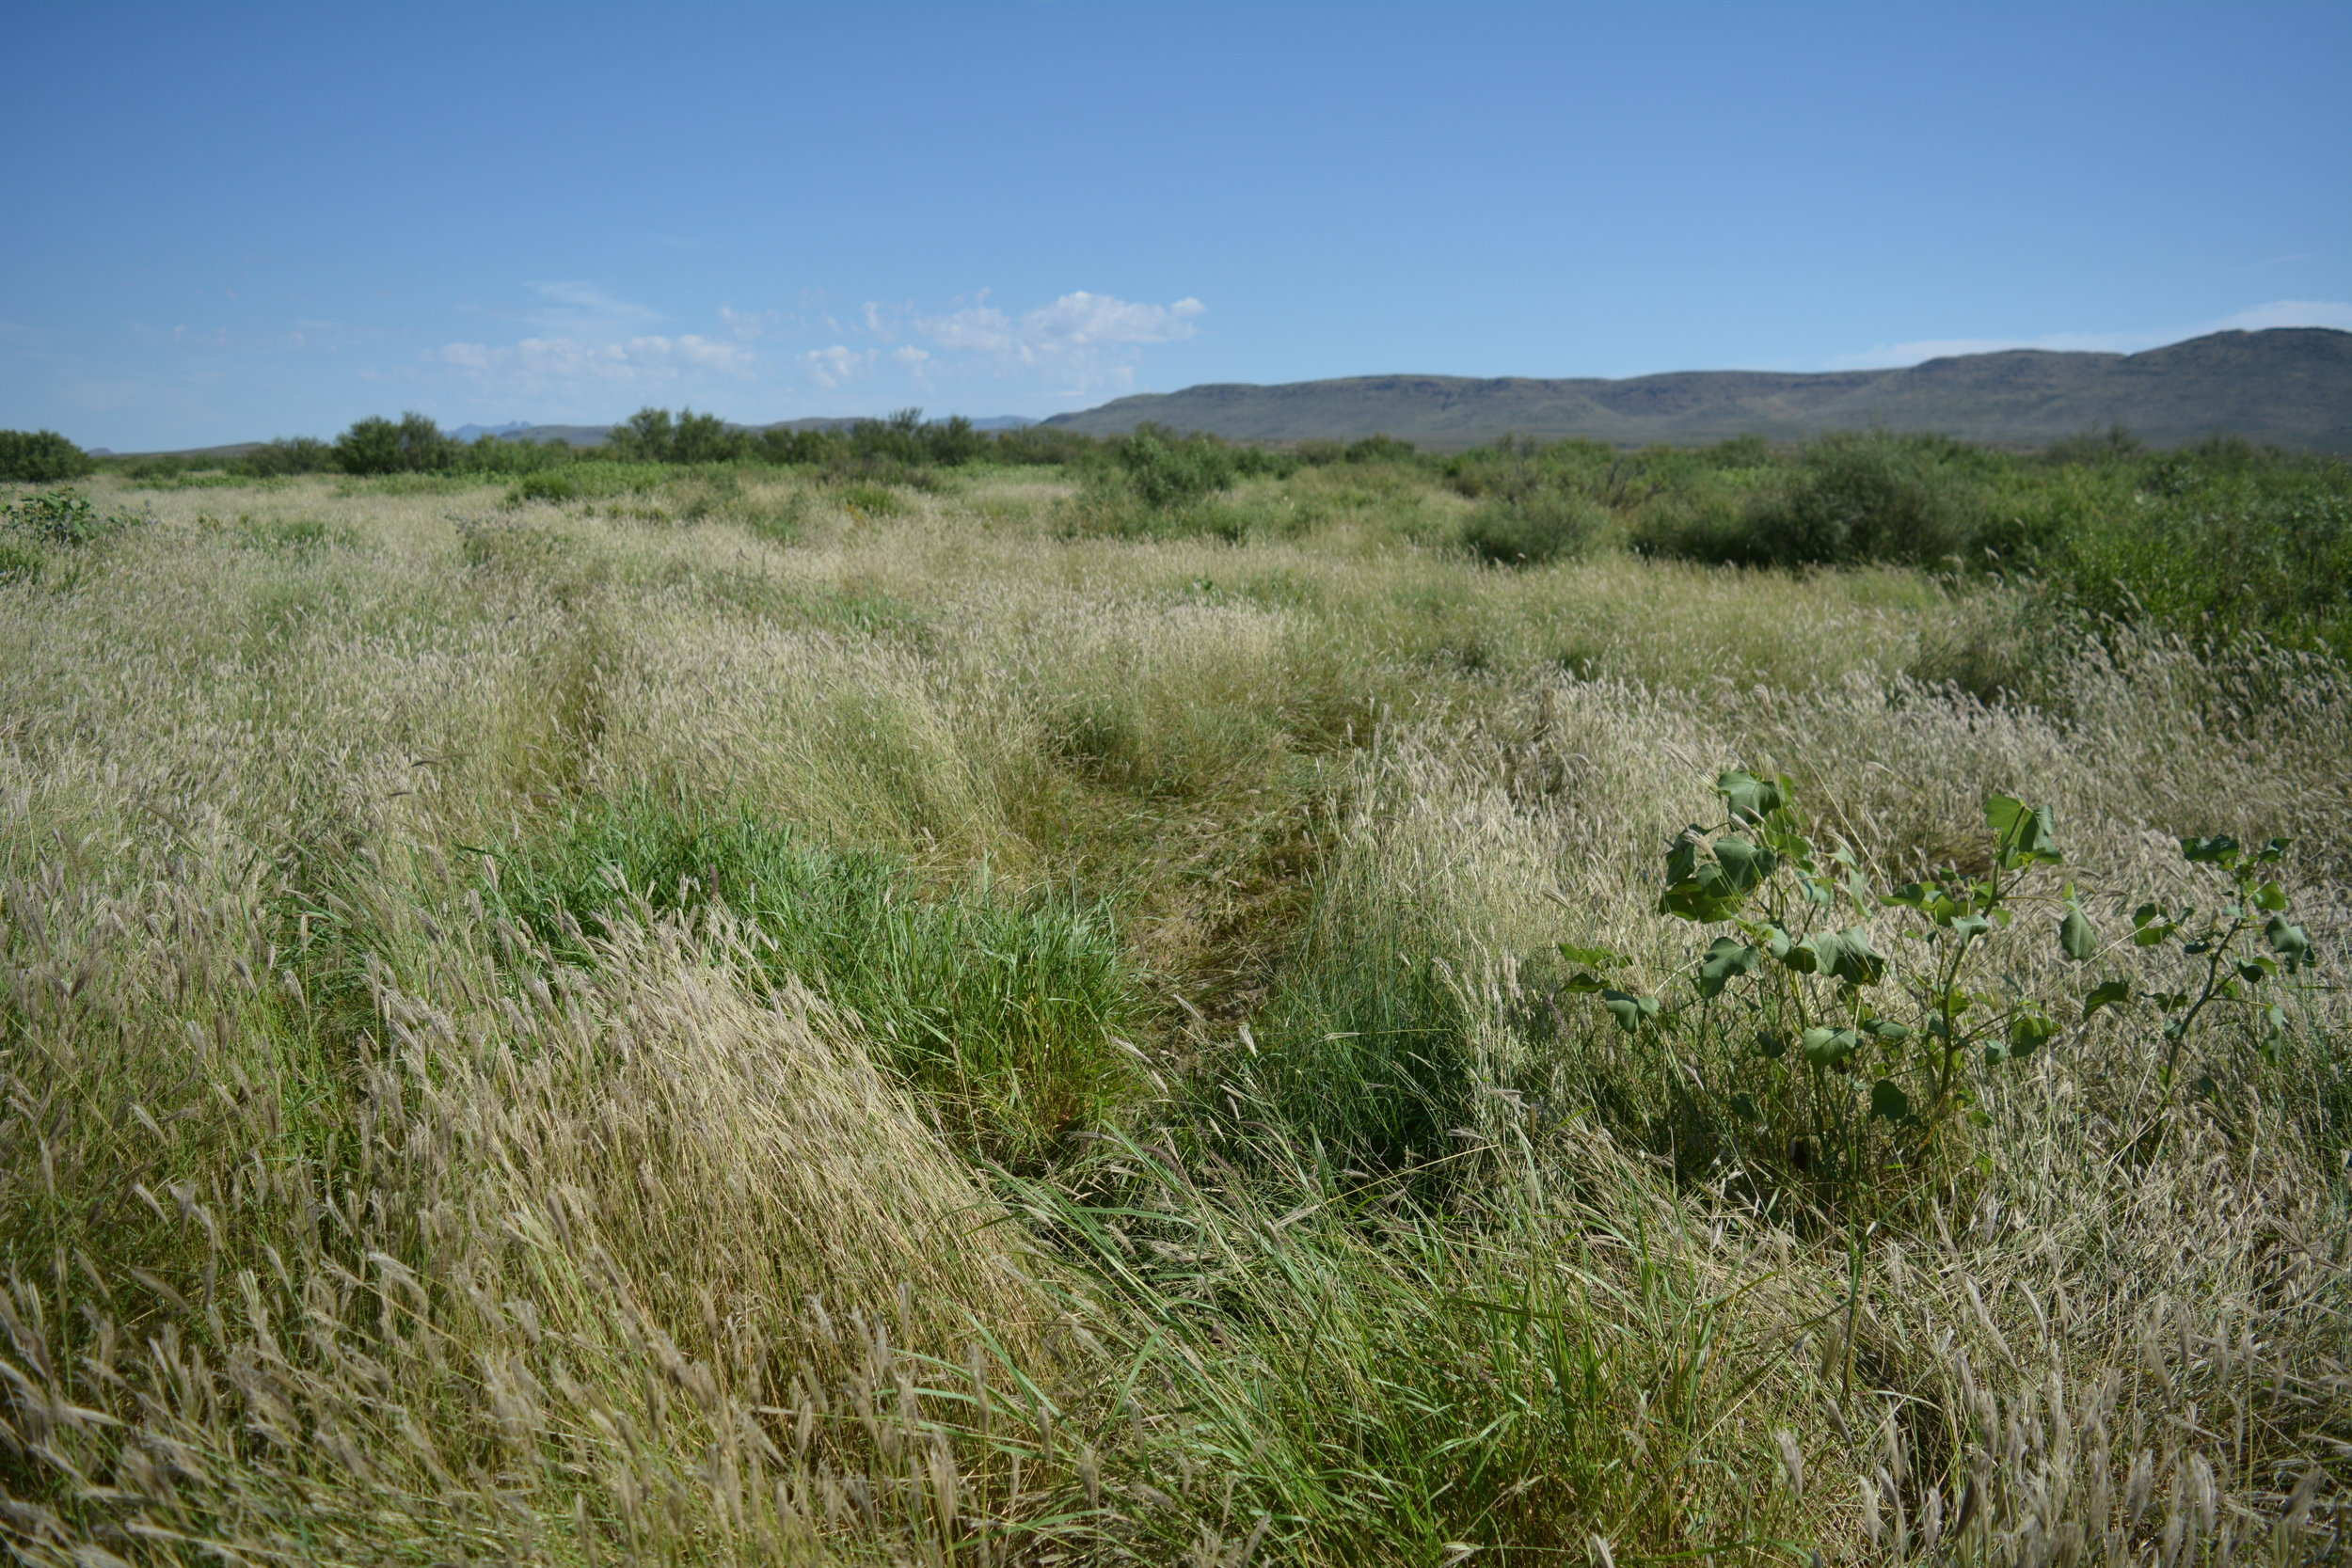 Grazed this pasture 6 times in 1 year